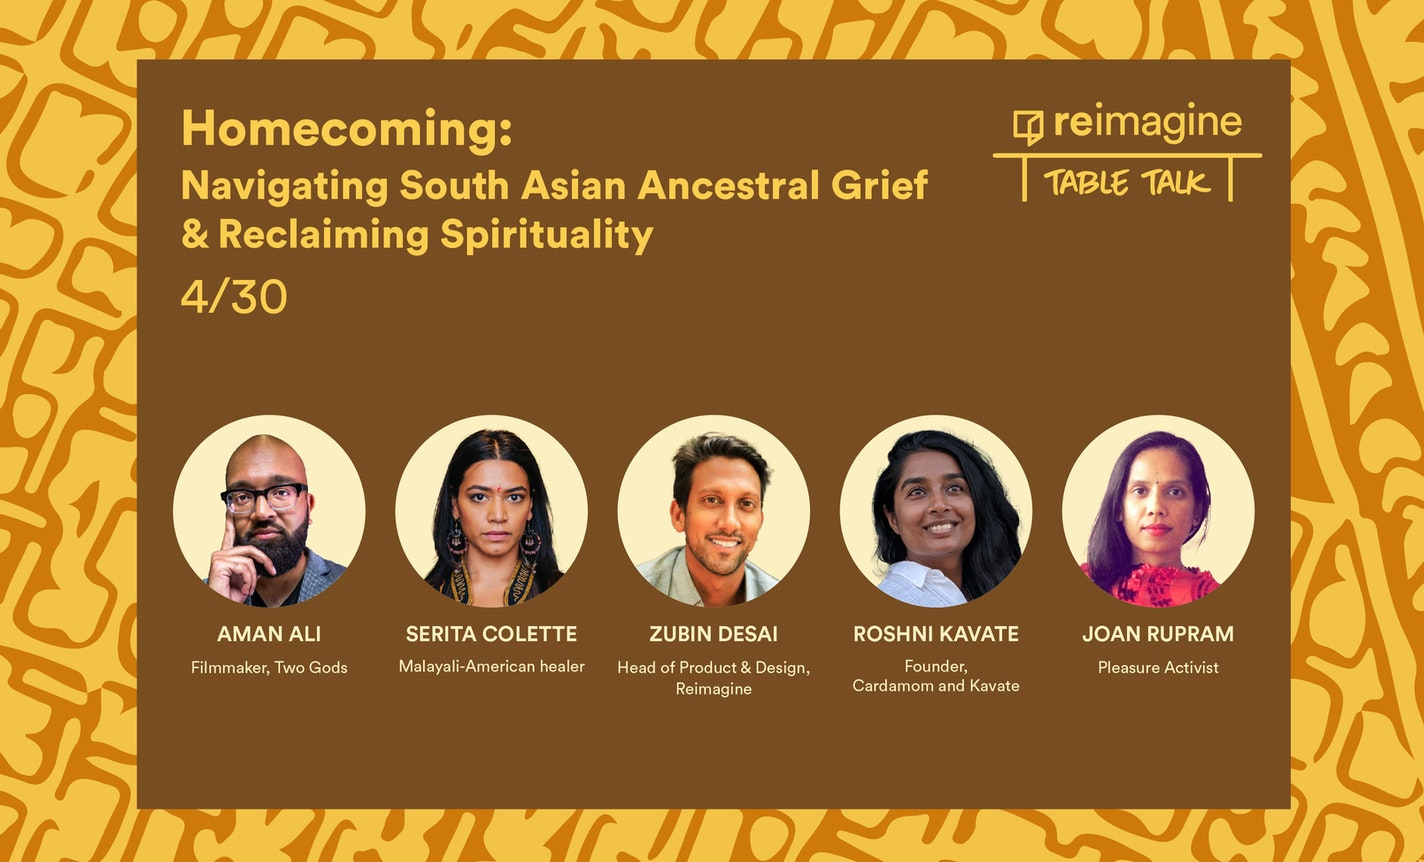 Homecoming: Navigating South Asian Ancestral Grief & Reclaiming Spirituality